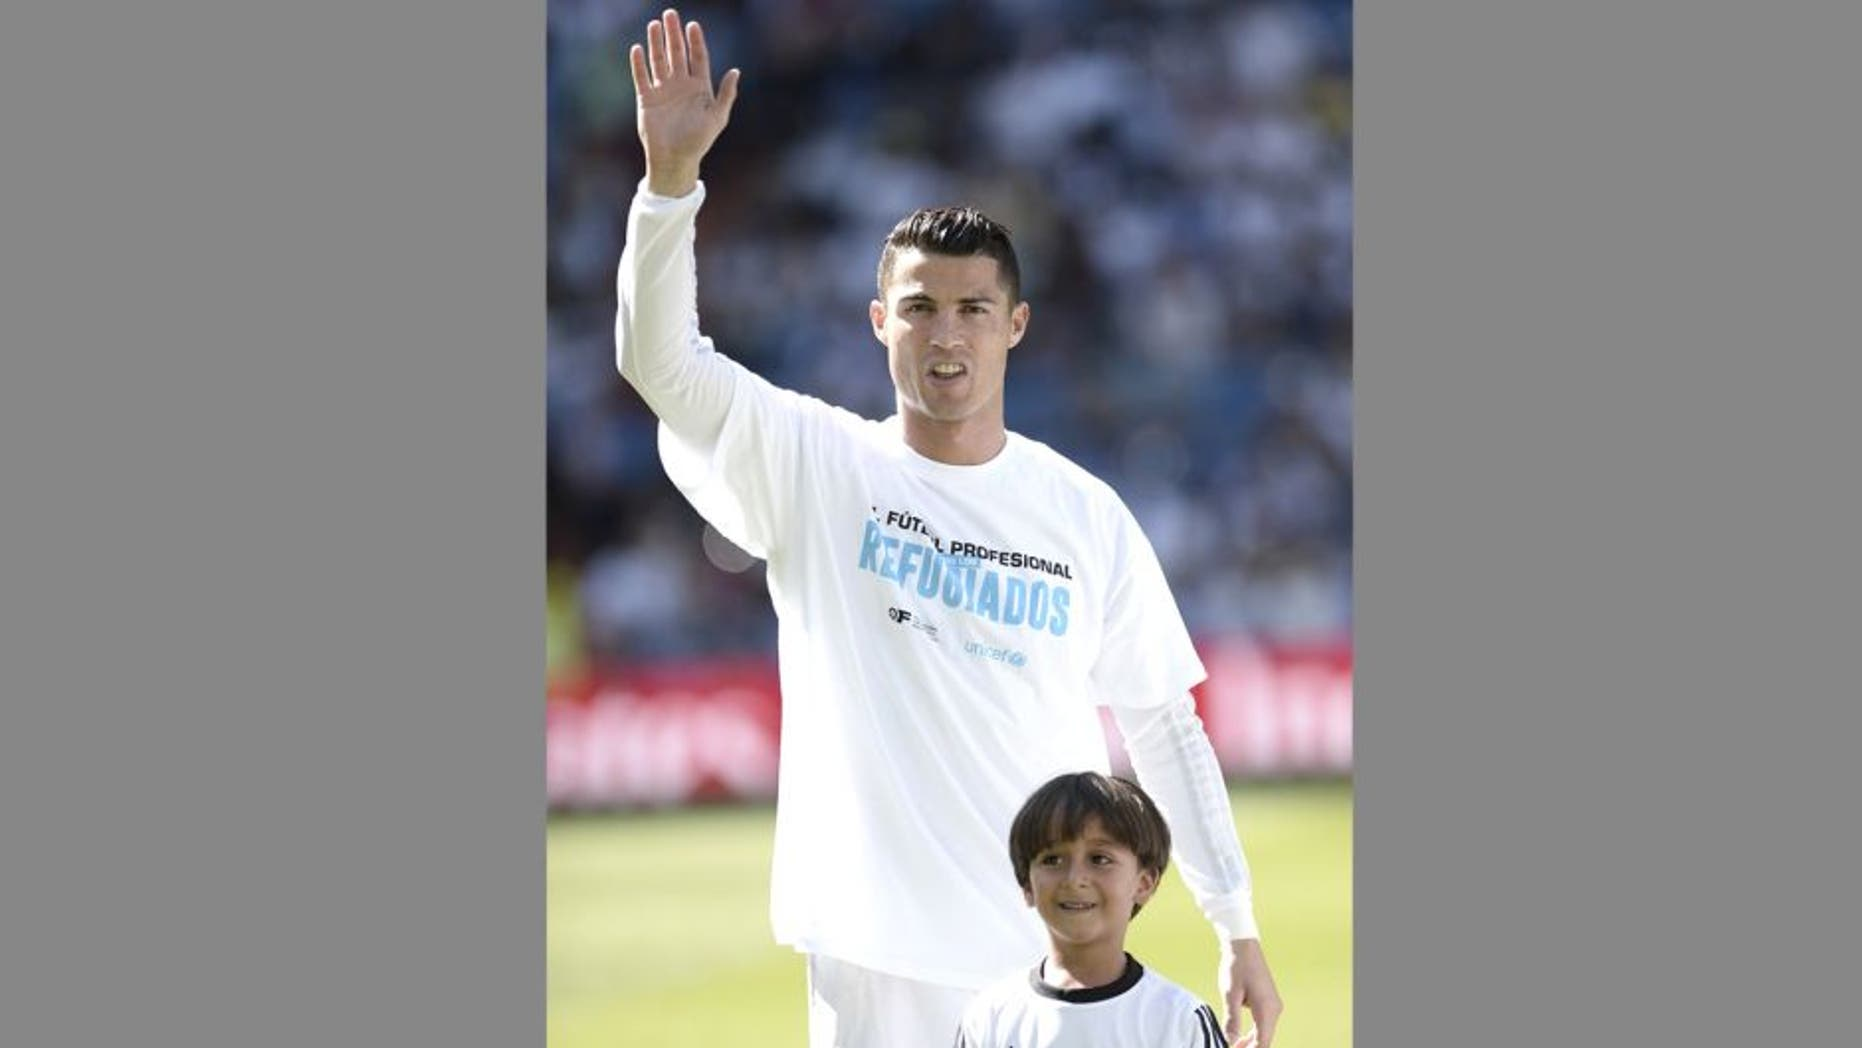 MADRID, SPAIN - SEPTEMBER 19: Zaid (R), son of Osama Abdul Mohsen (not seen), the Syrian refugee who had tripped over by a Hungarian journalist, pose with Cristiano Ronaldo (L) of Real Madrid before La Liga football match between Real Madrid CF vs Granada FC as the guests of Real Madrid CF at the Santiago Bernabeu stadium in Madrid on September 19, 2015. (Photo by Burak Akbulut/Anadolu Agency/Getty Images)